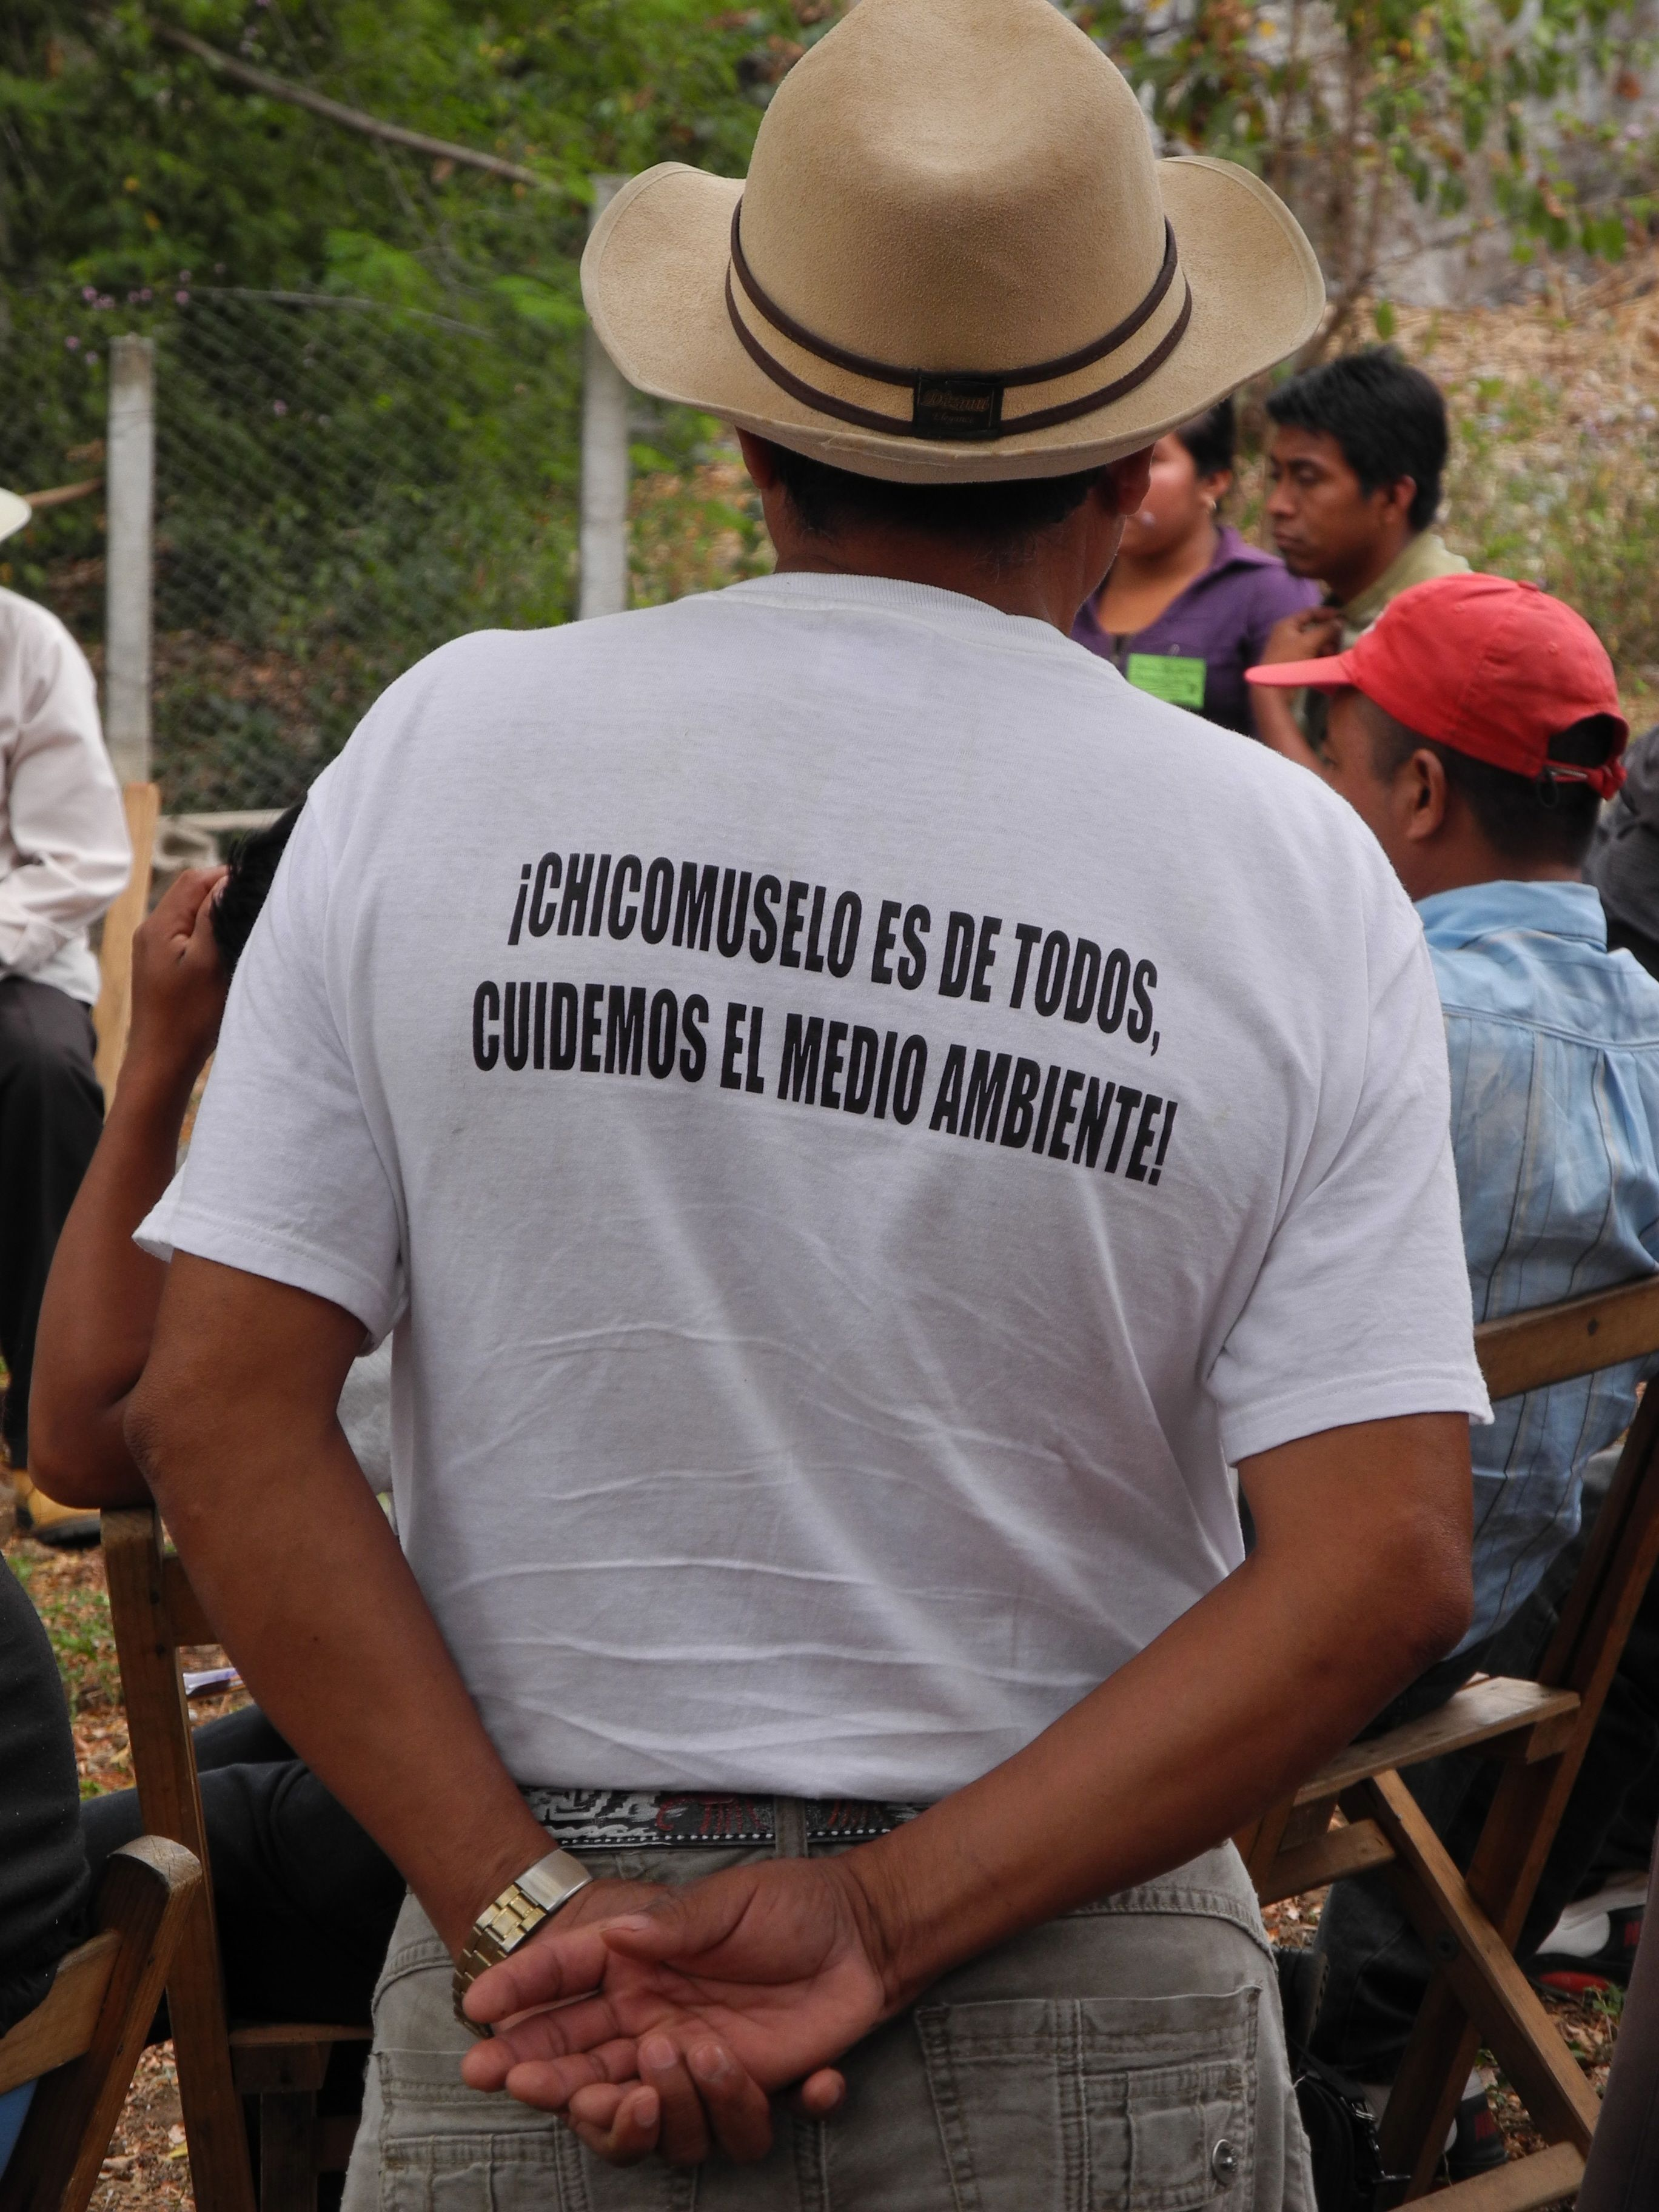 "Man's shirt reads: ""Chicomuselo belongs to us all, we take care of the environment!"" Resistance to mining in Chicomuselo, Chiapas continues where Blackfire Exploration operated the Payback barite mine until it was shuttered in December 2009, shortly after the murder of local activist Mariano Abarca. Photo: MiningWatch"